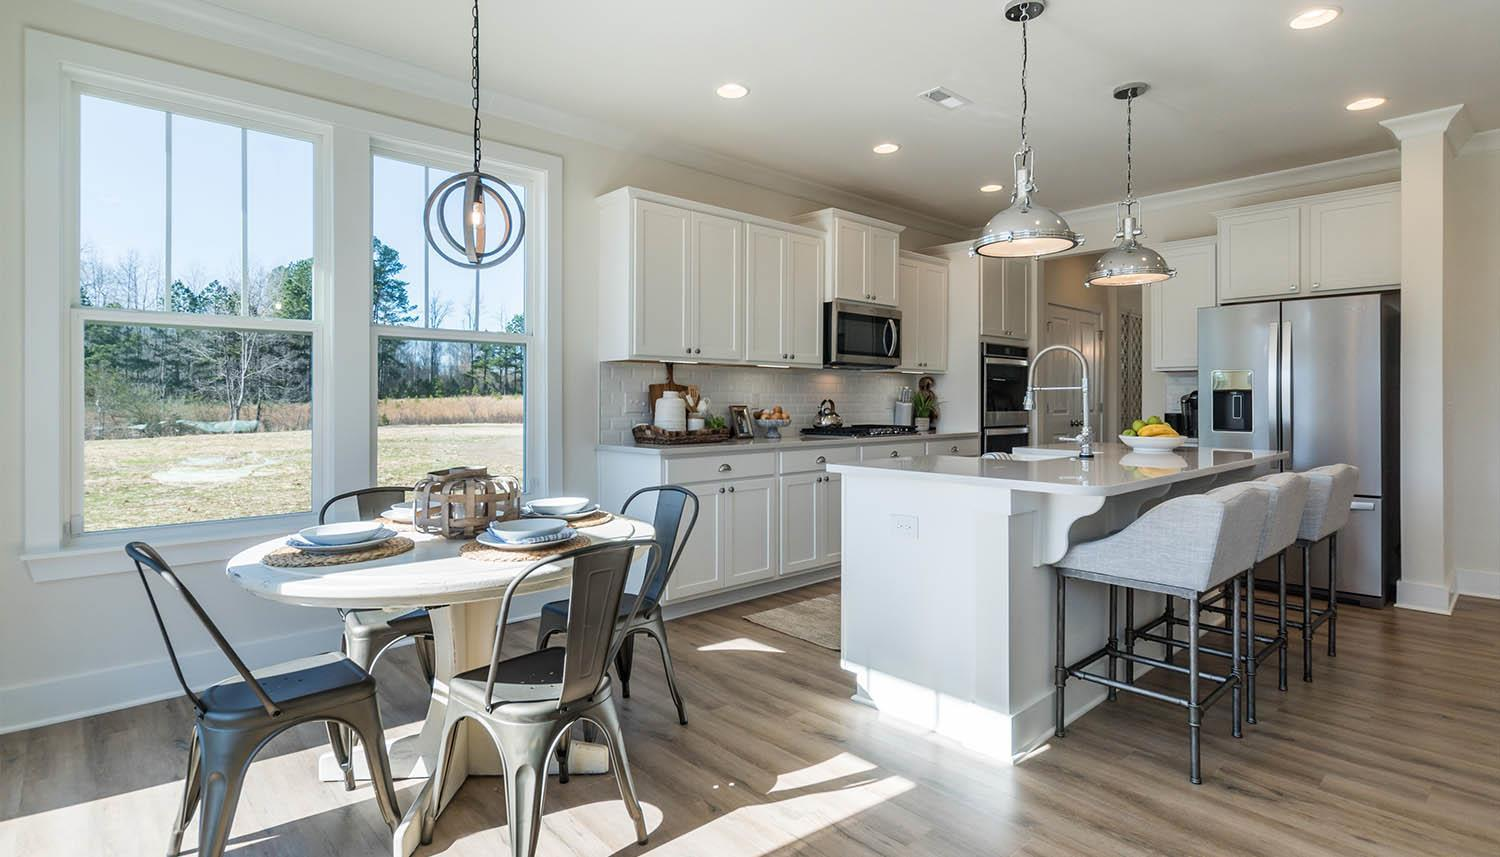 Kitchen featured in the Middleton  By Dan Ryan Builders in Raleigh-Durham-Chapel Hill, NC